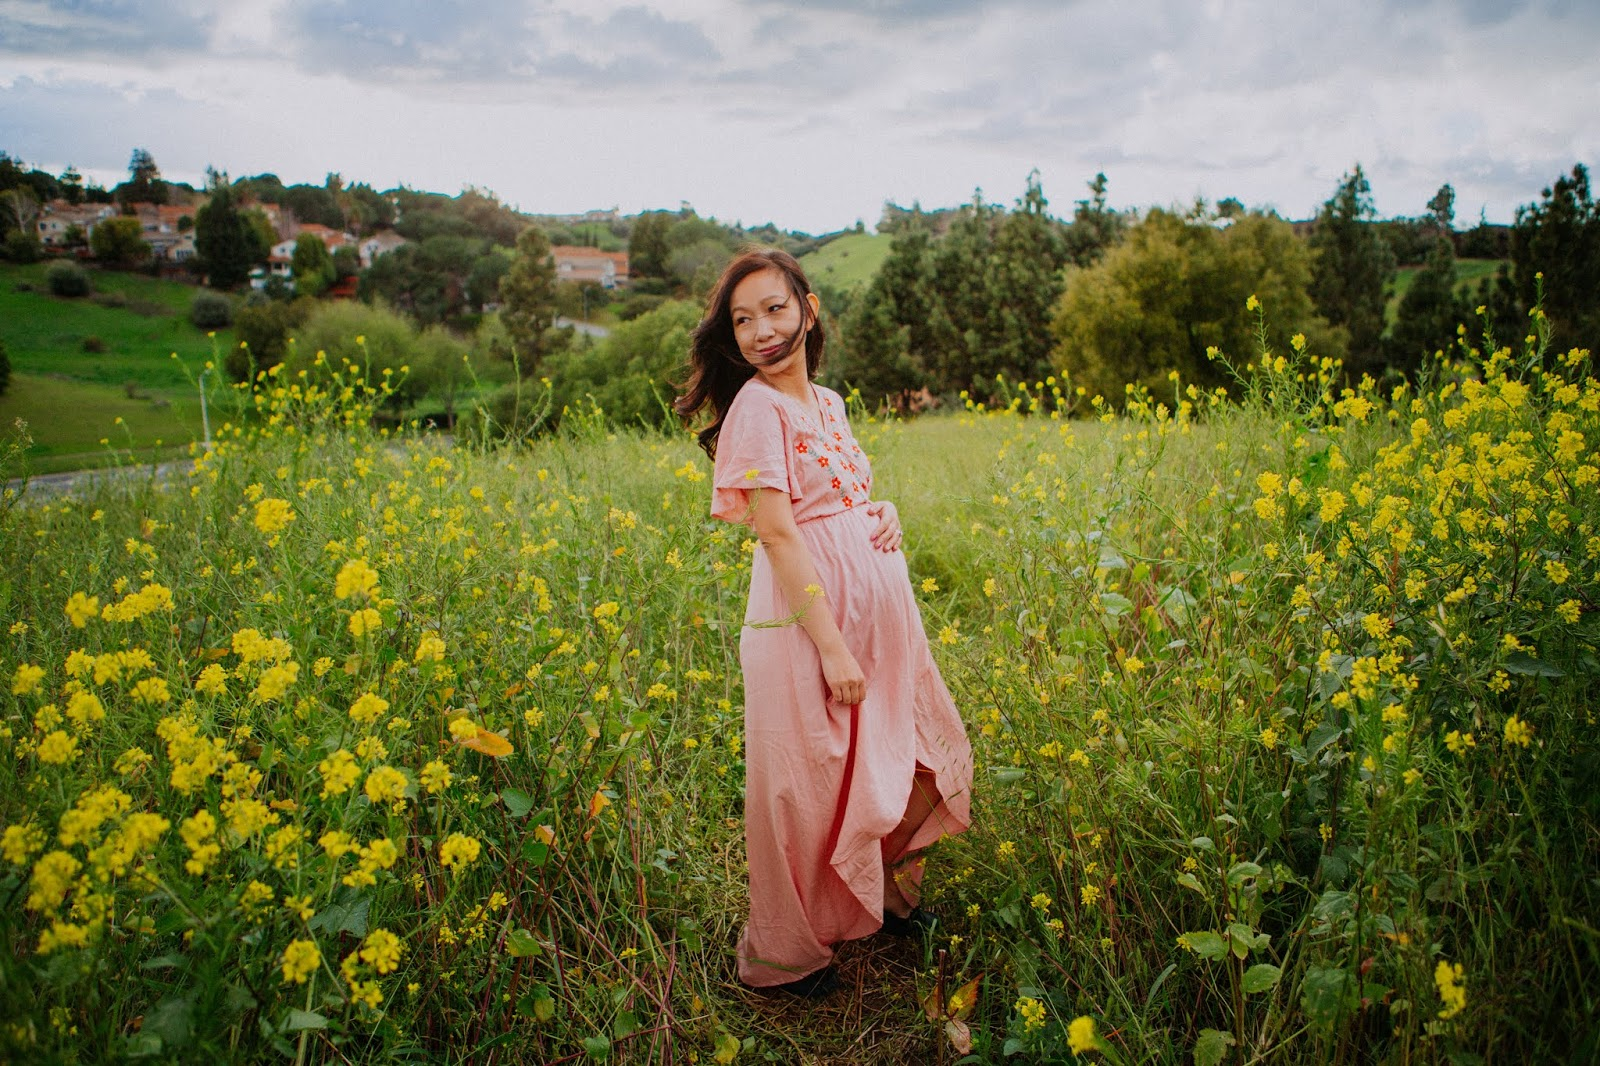 mustard flower fields maternity session bay area